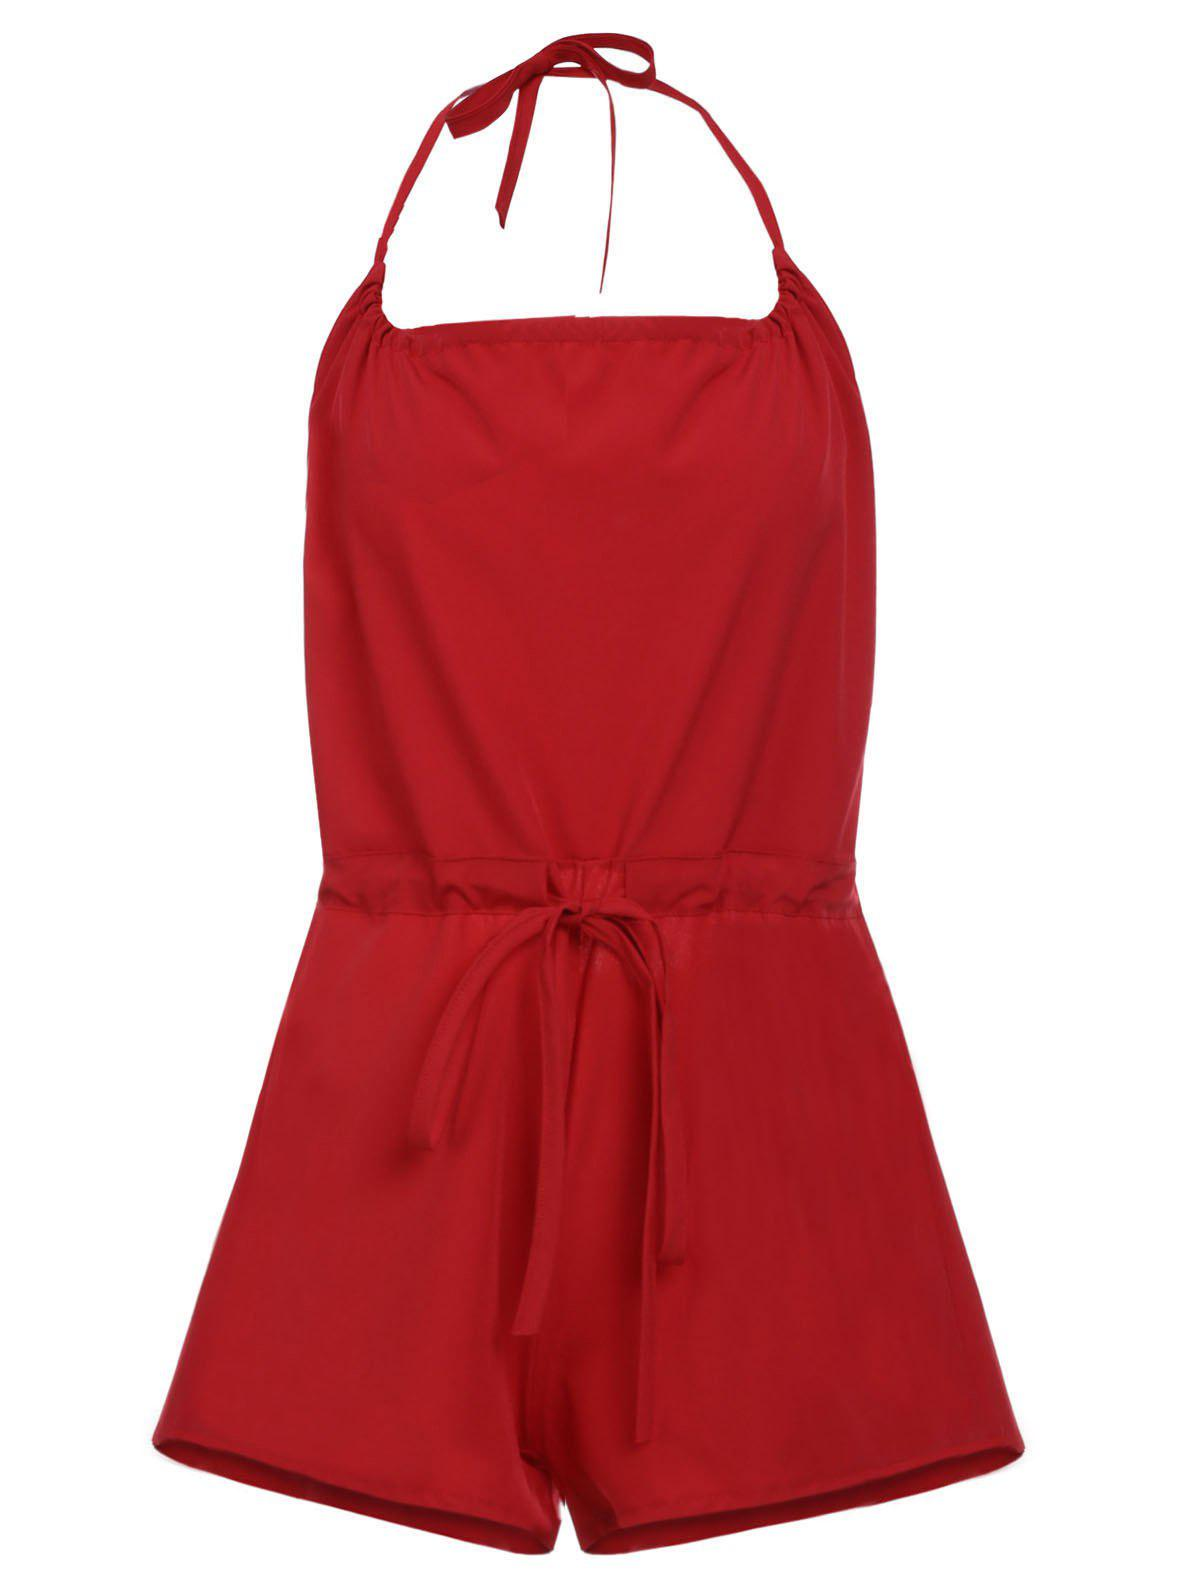 Trendy Sleeveless Halter Lace-Up Backless Pure Color Women's Romper